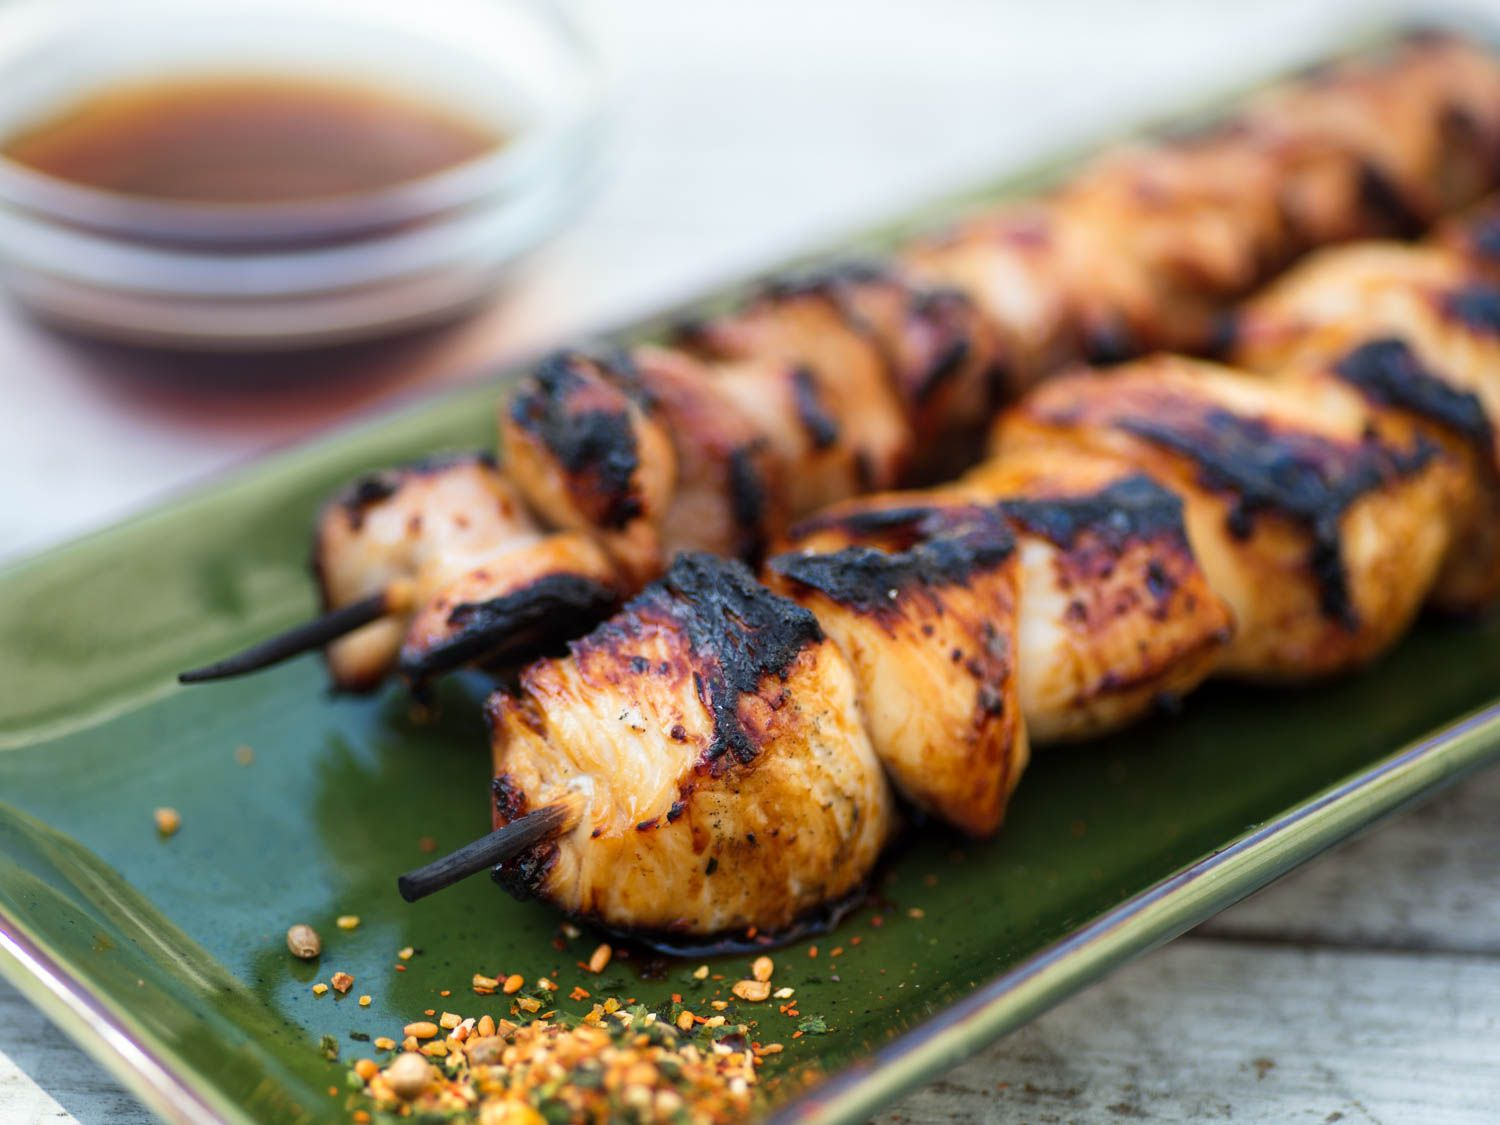 Grilled sweet-and-sour chicken skewers (yakitori nanbansu) on a green dish